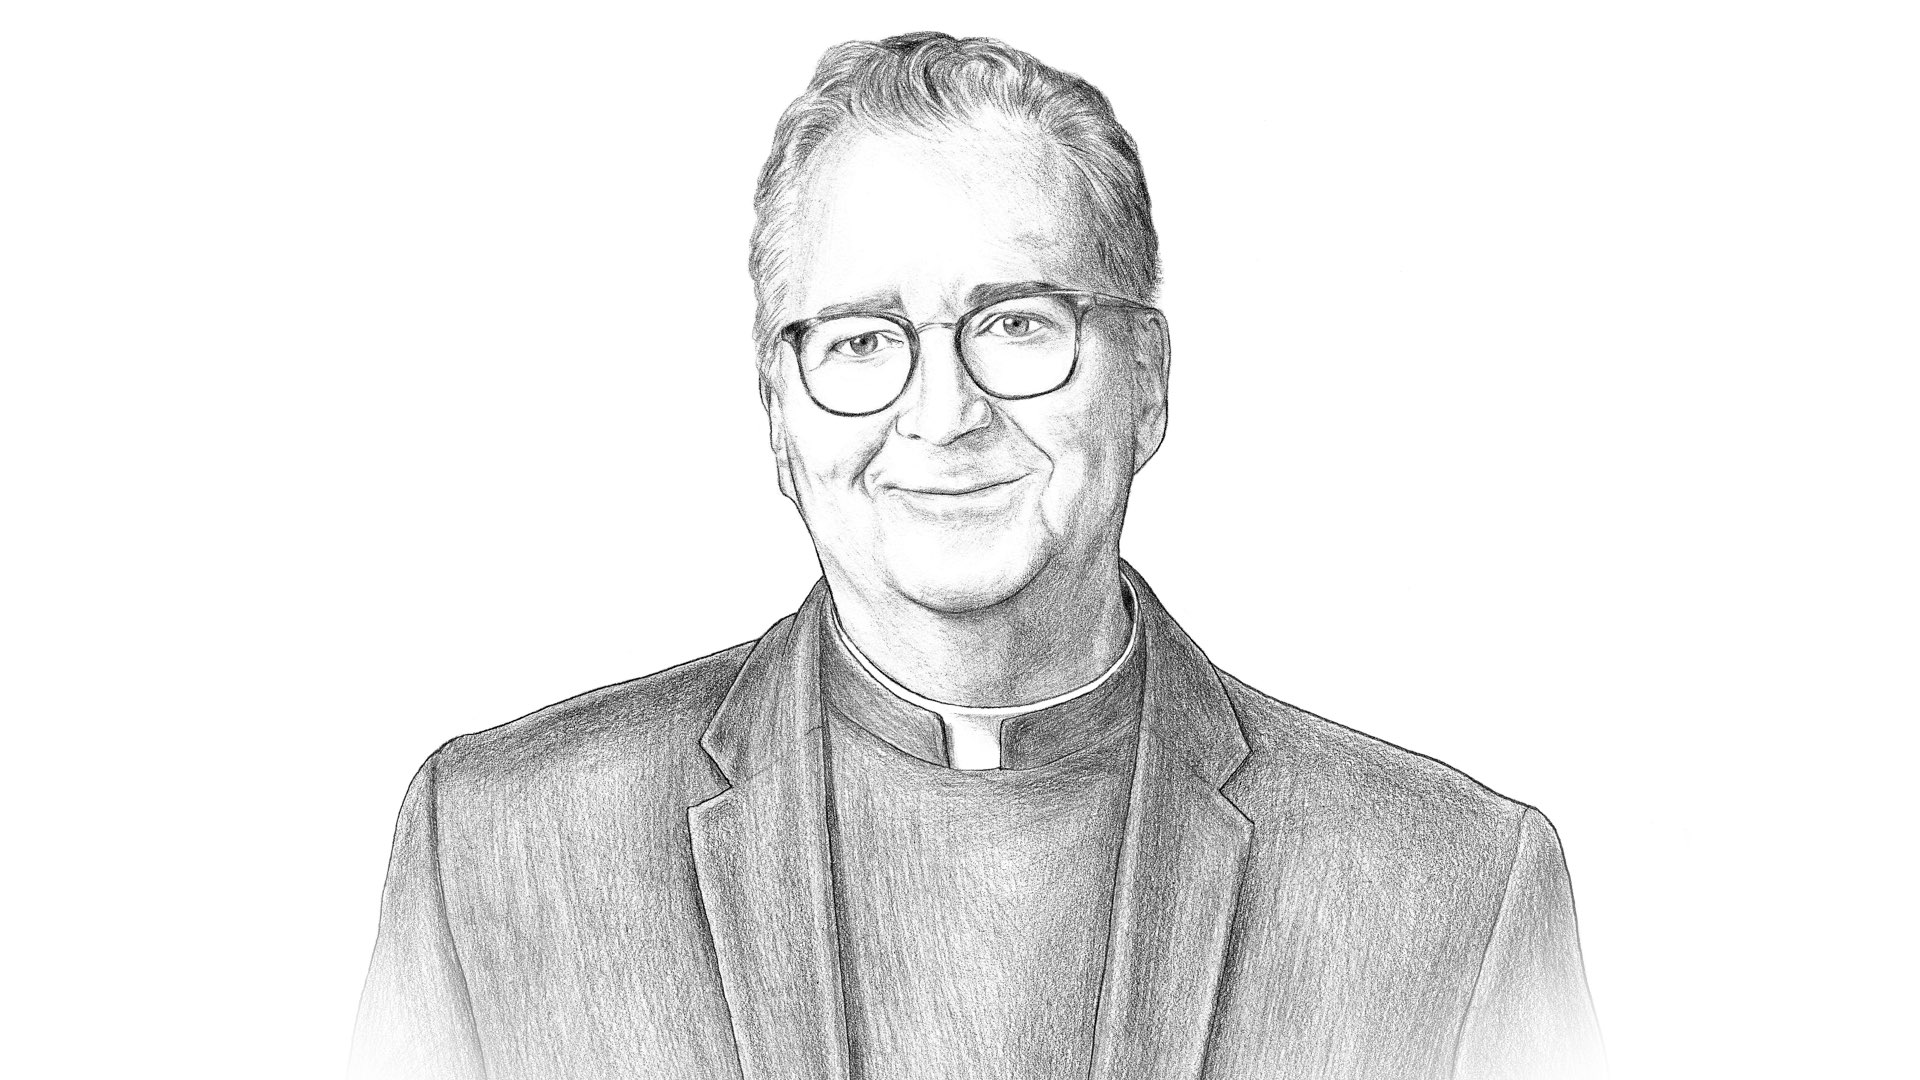 A black and white pencil illustration of Villanova University President the Rev. Peter M. Donohue.